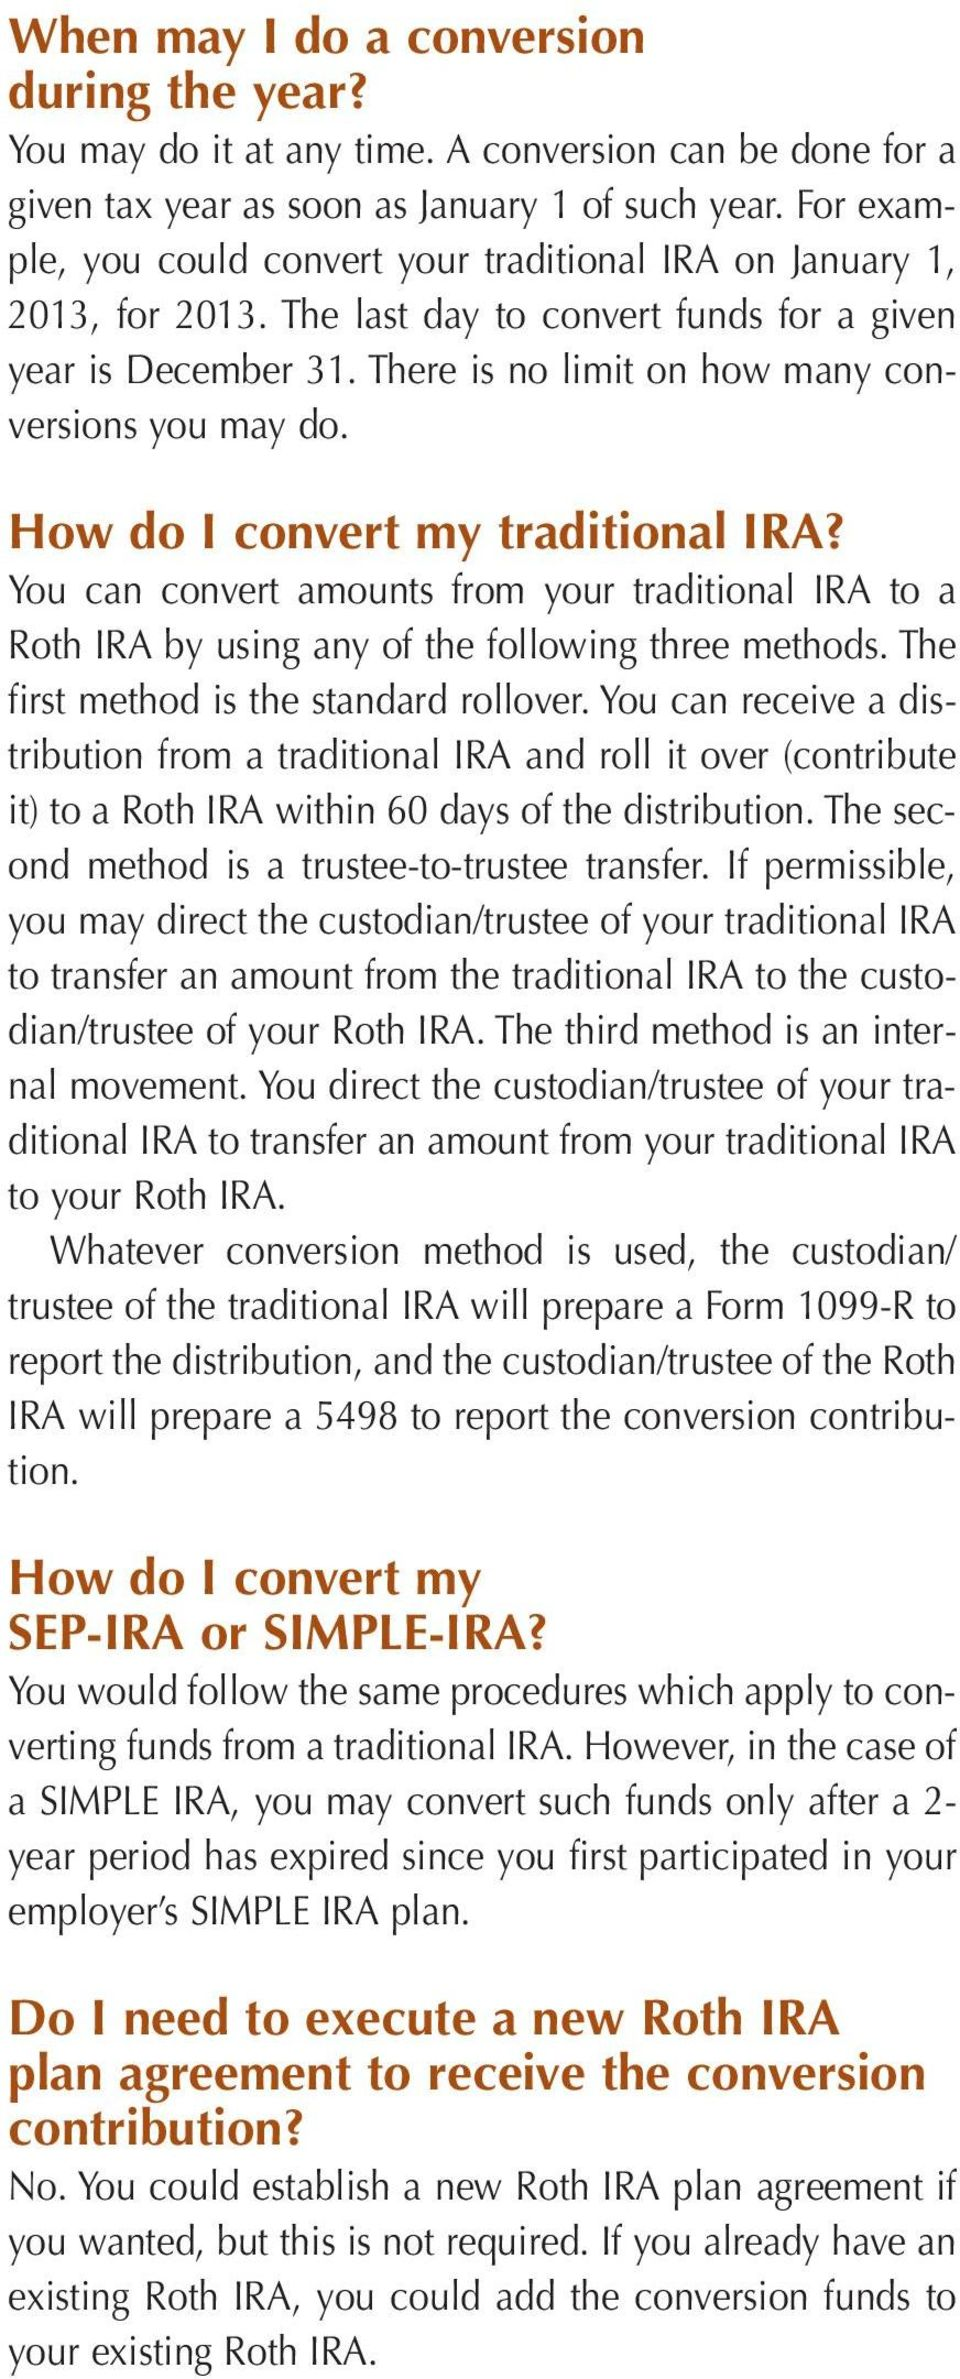 How do I convert my traditional IRA? You can convert amounts from your traditional IRA to a Roth IRA by using any of the following three methods. The first method is the standard rollover.